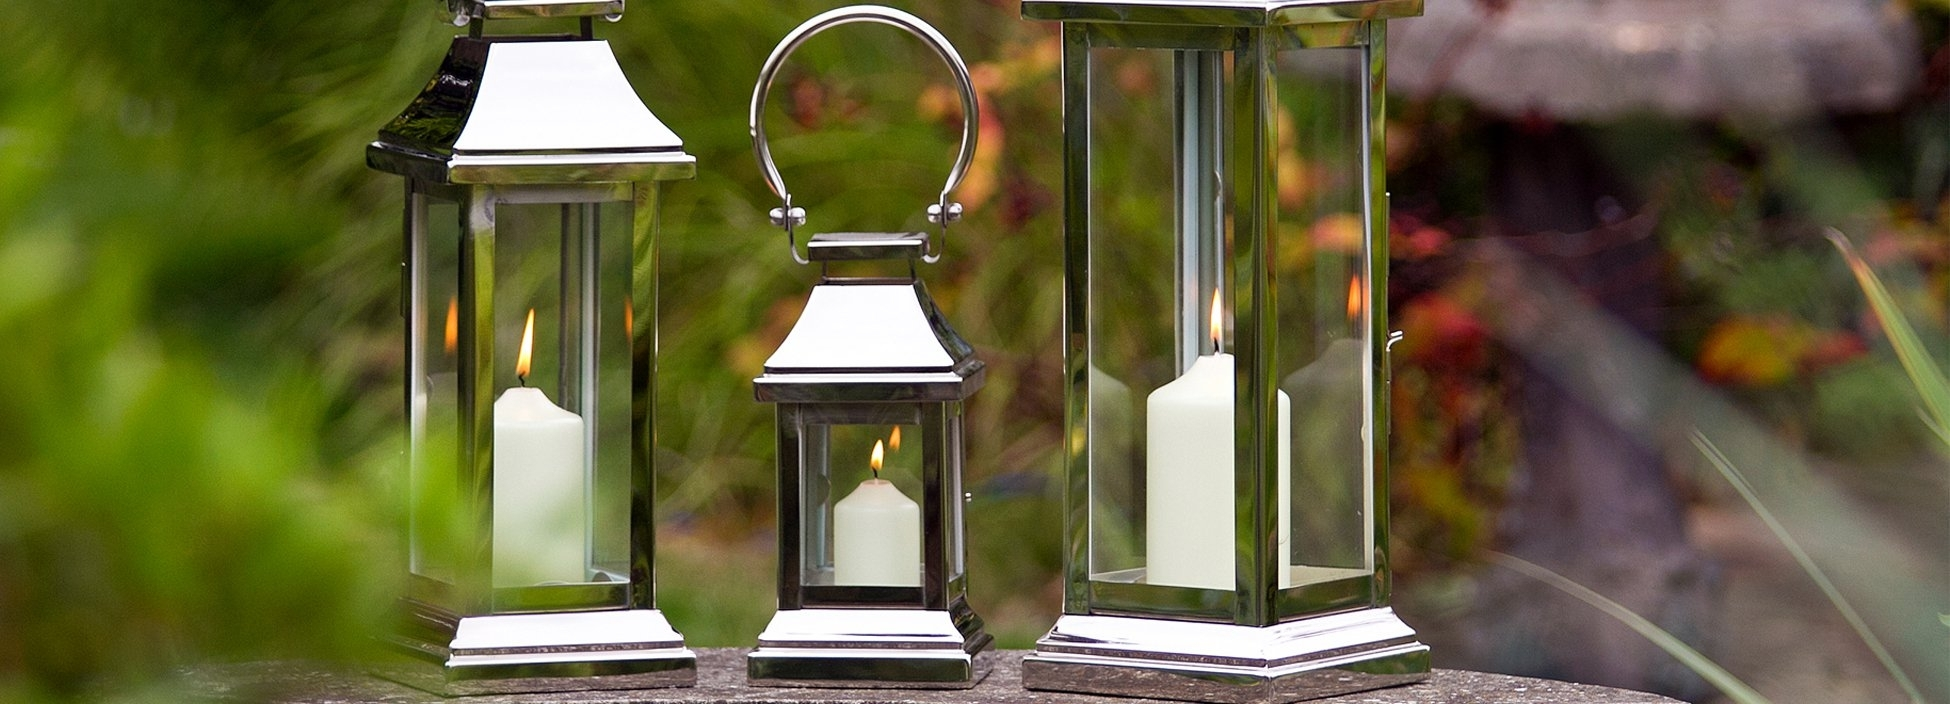 Indoor Candle Lanterns & Garden Lanterns | Culinary Concepts regarding Outdoor Lanterns And Candles (Image 11 of 20)